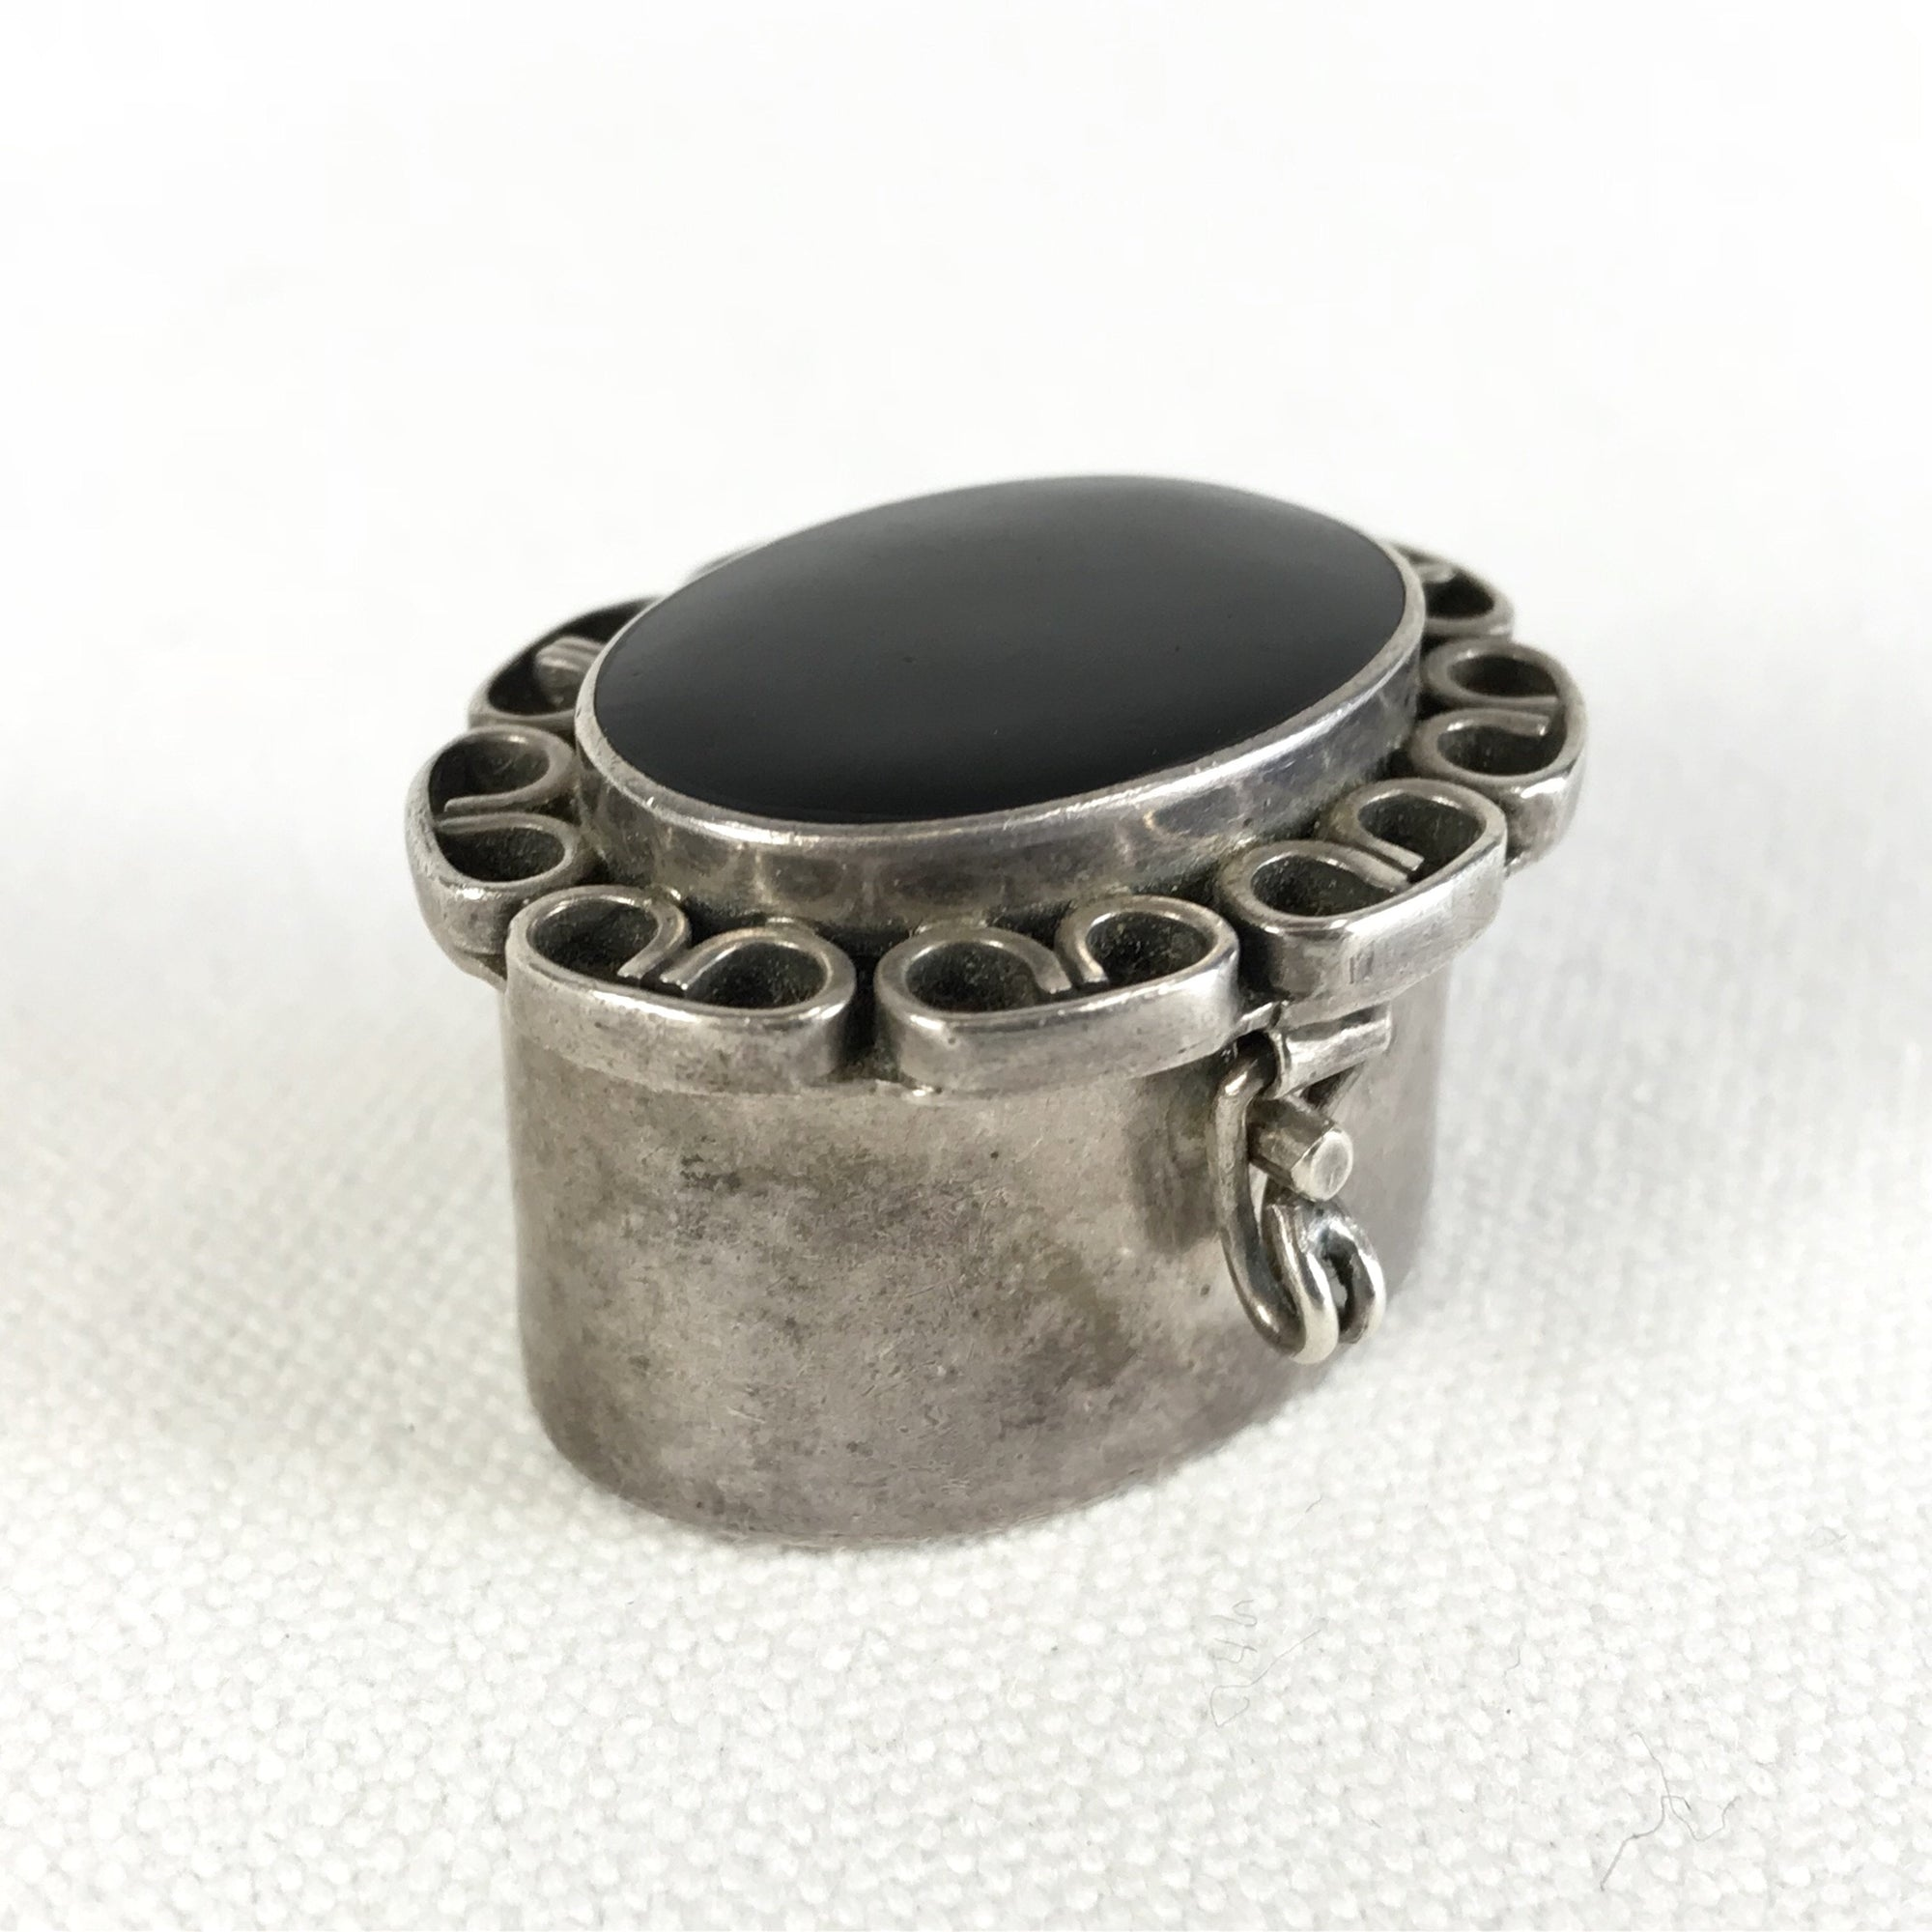 Taxco silver pill box with a hinged lid